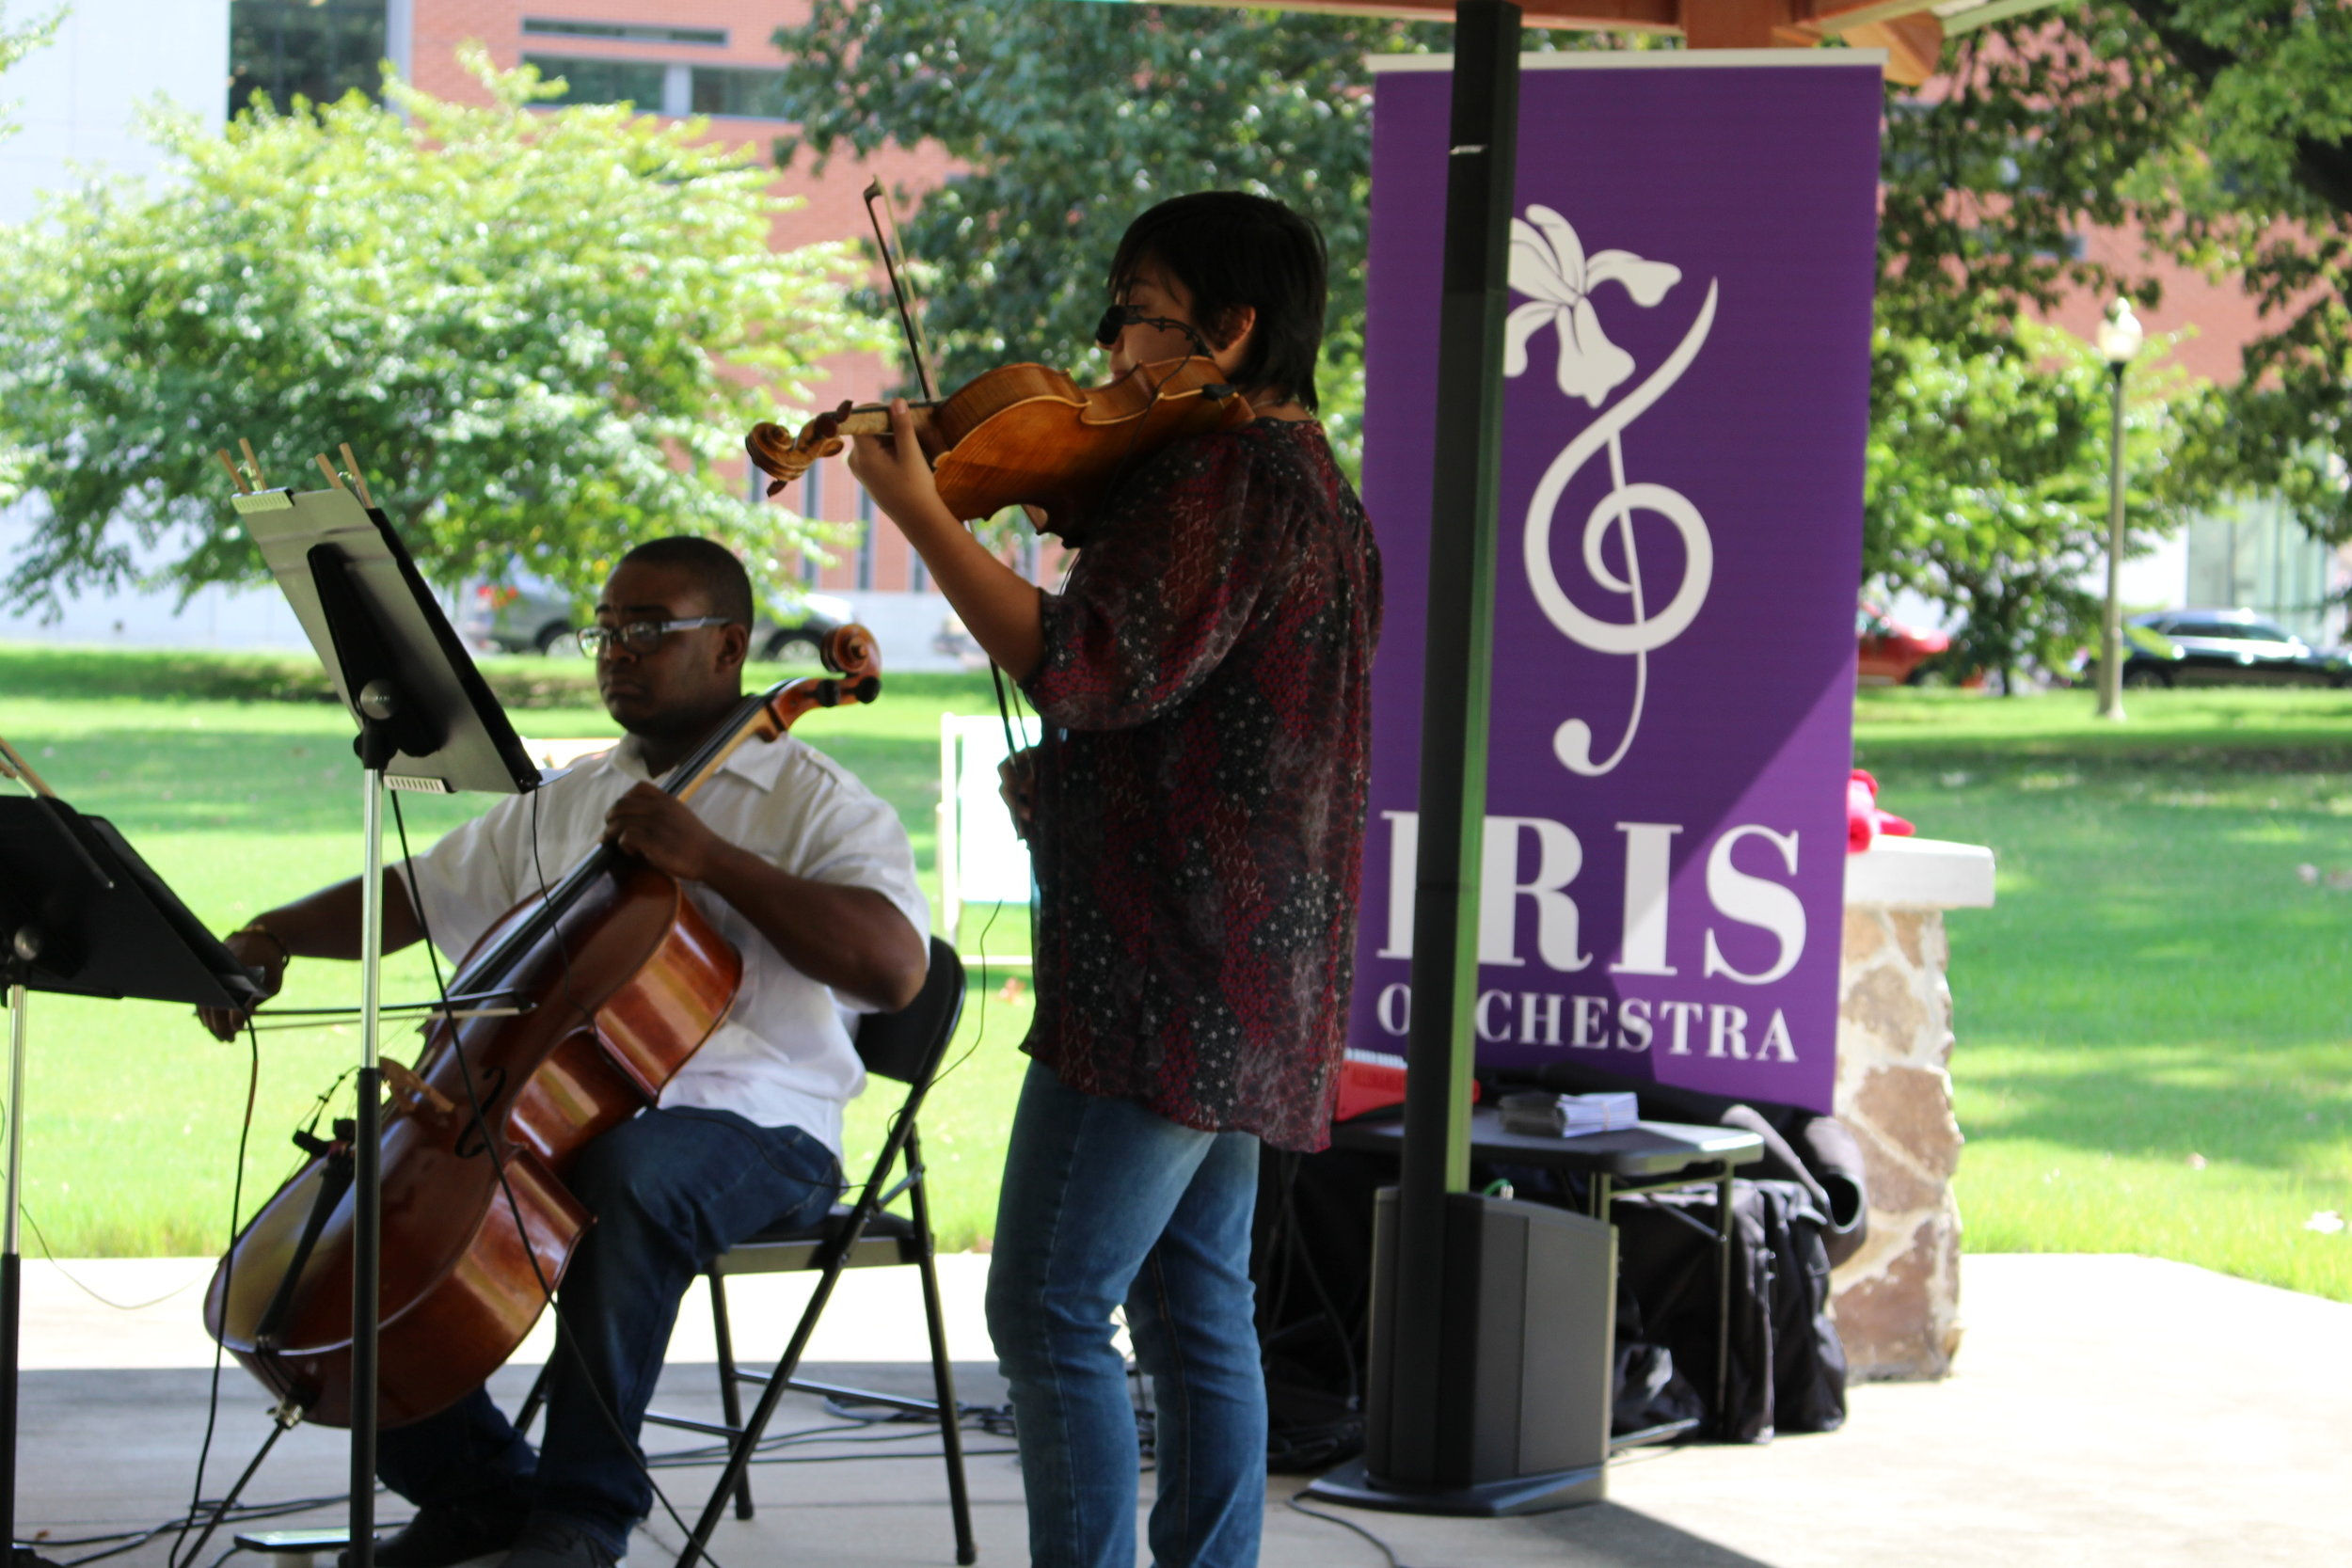 IRIS Orchestra - Free Concerts - MMDC partnered with IRIS Orchestra to present free concerts on four consecutive Fridays in September and October 2018 at Health Sciences Park, as well as a finale concert at Treedom Memphis. Over 100 people attended these events. We will continue this program in 2019 – check back for updates on time and dates.